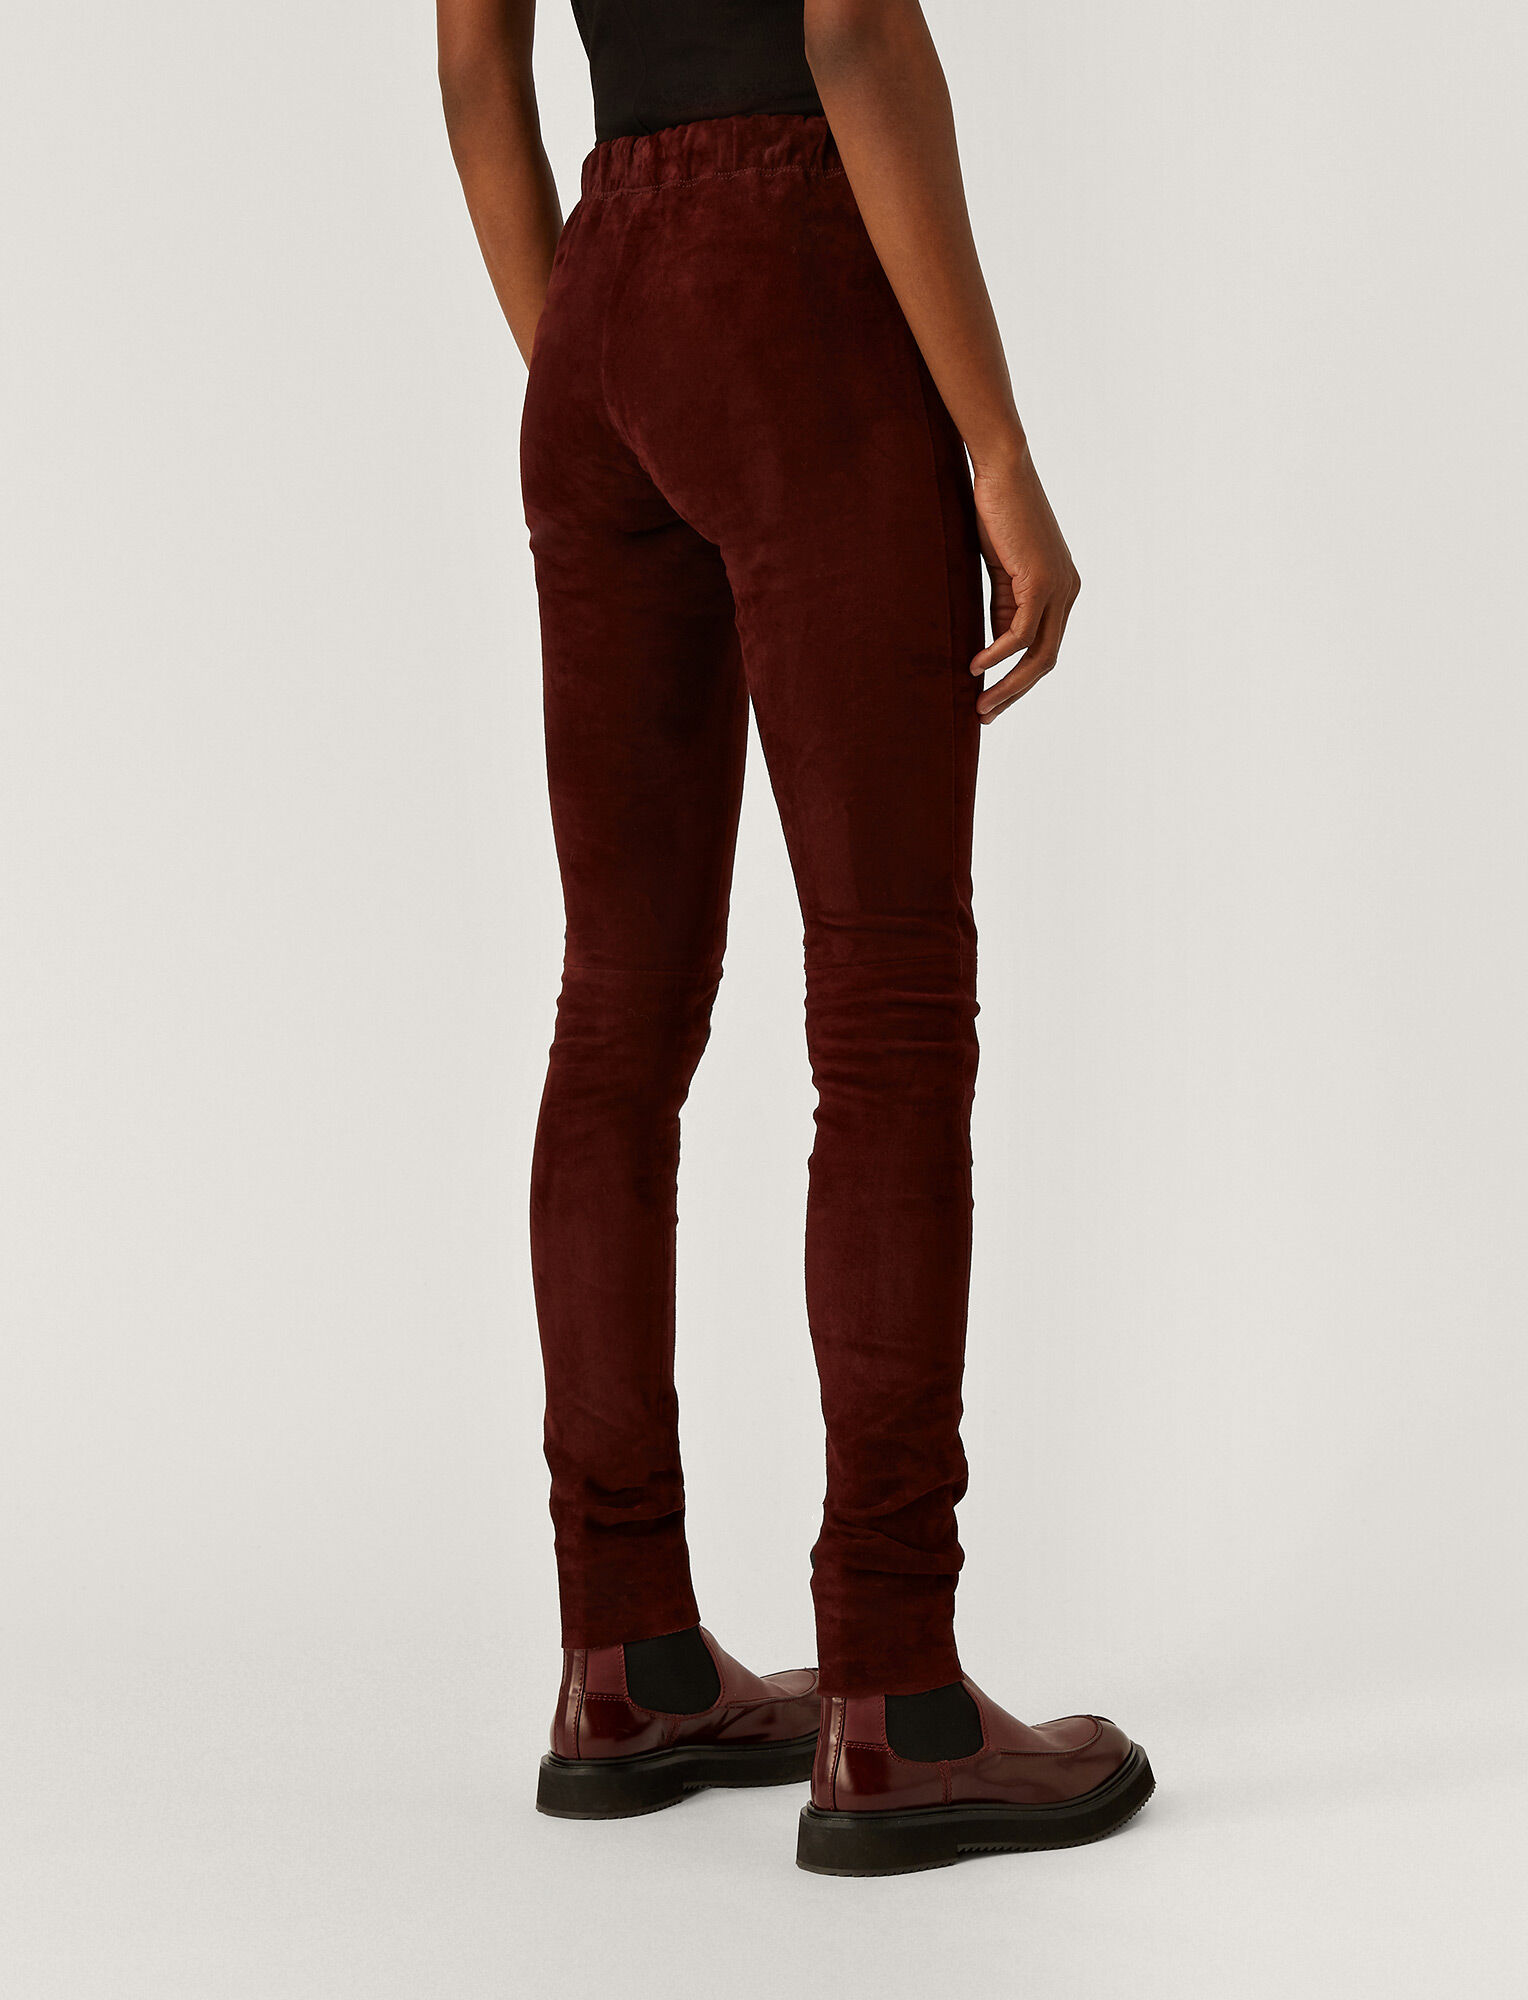 Joseph, Suede Stretch Legging, in Plum